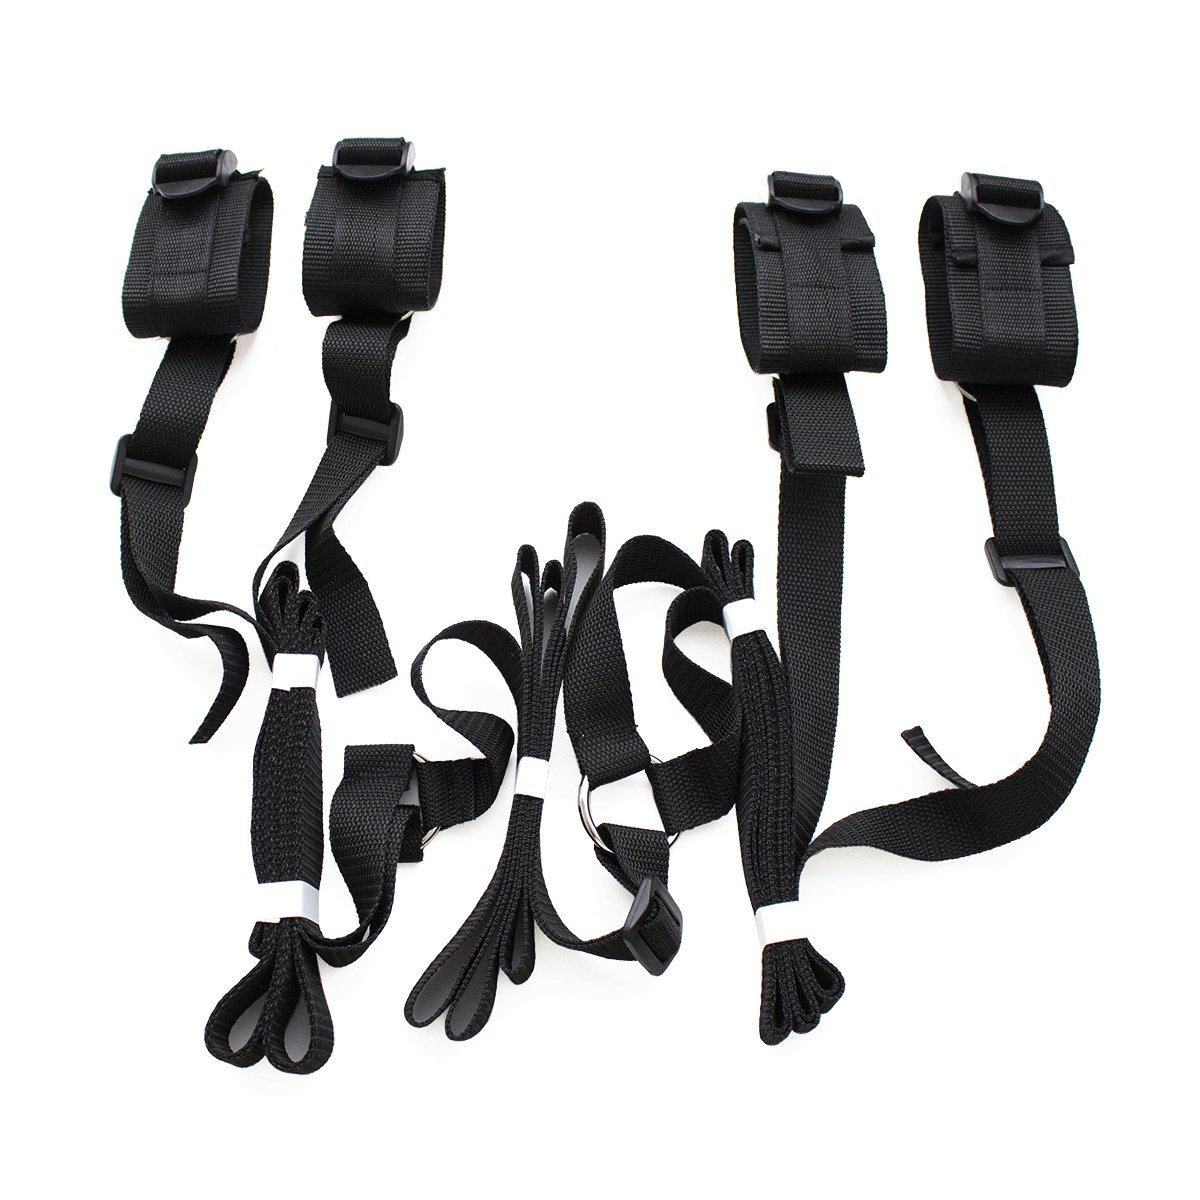 LVYI Adjustable Under the Bed Restraints Straps Exercise Bands for Couples (0002)